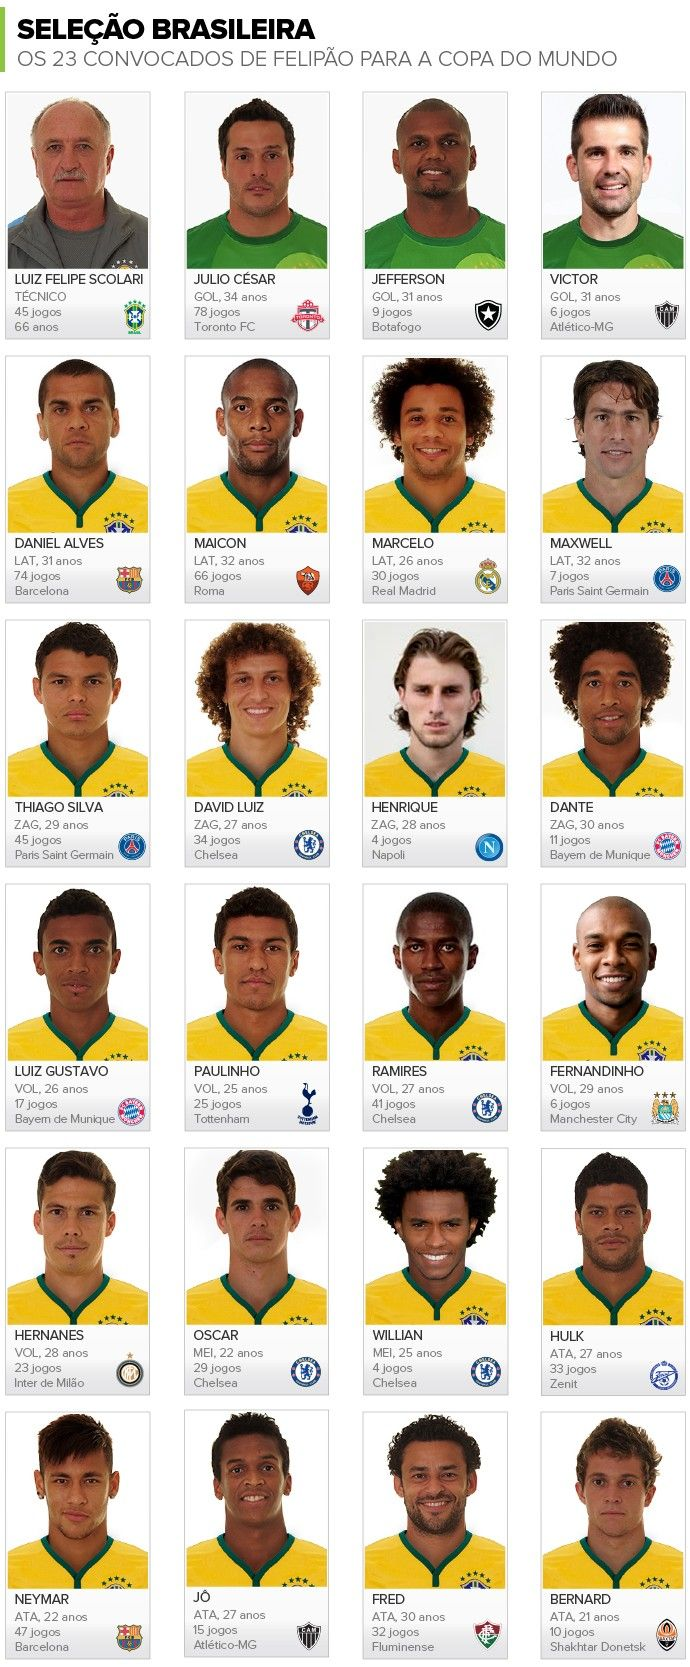 The 23 players and coach of the Brasil 2014 team. COPA DO MUNDO 2014#Fifa #WorldCup2014 #Brasil